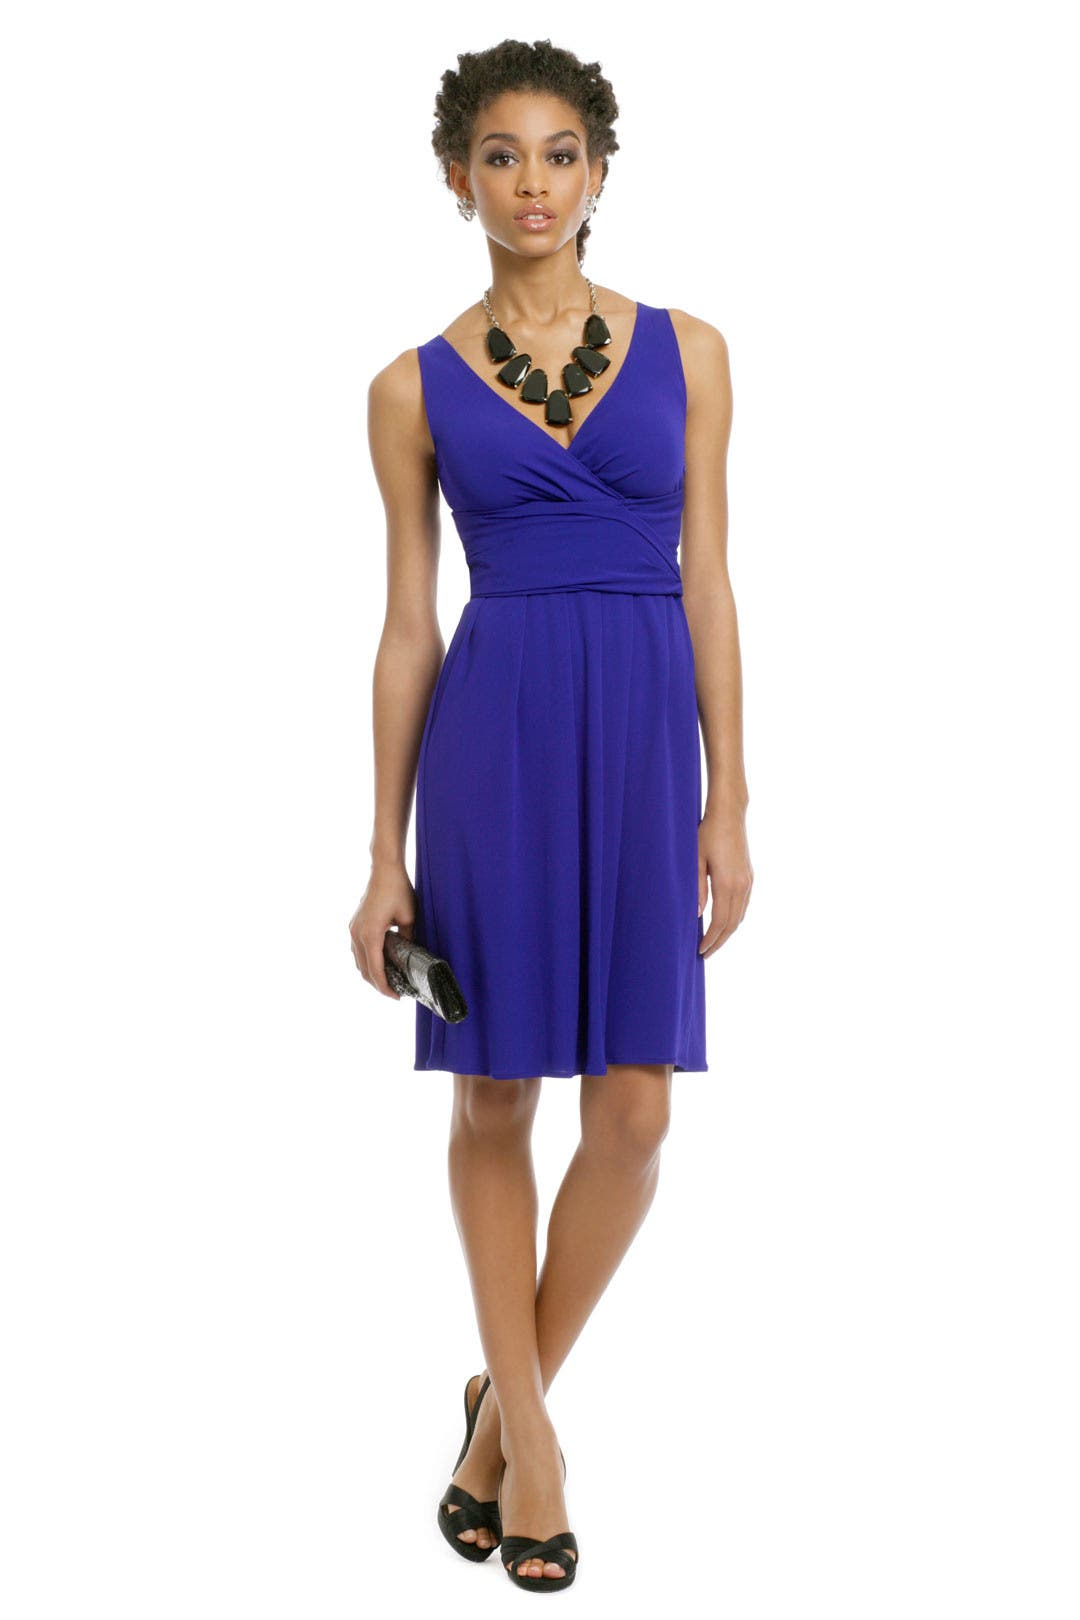 Indigo Dance Dress by Moschino Cheap And Chic